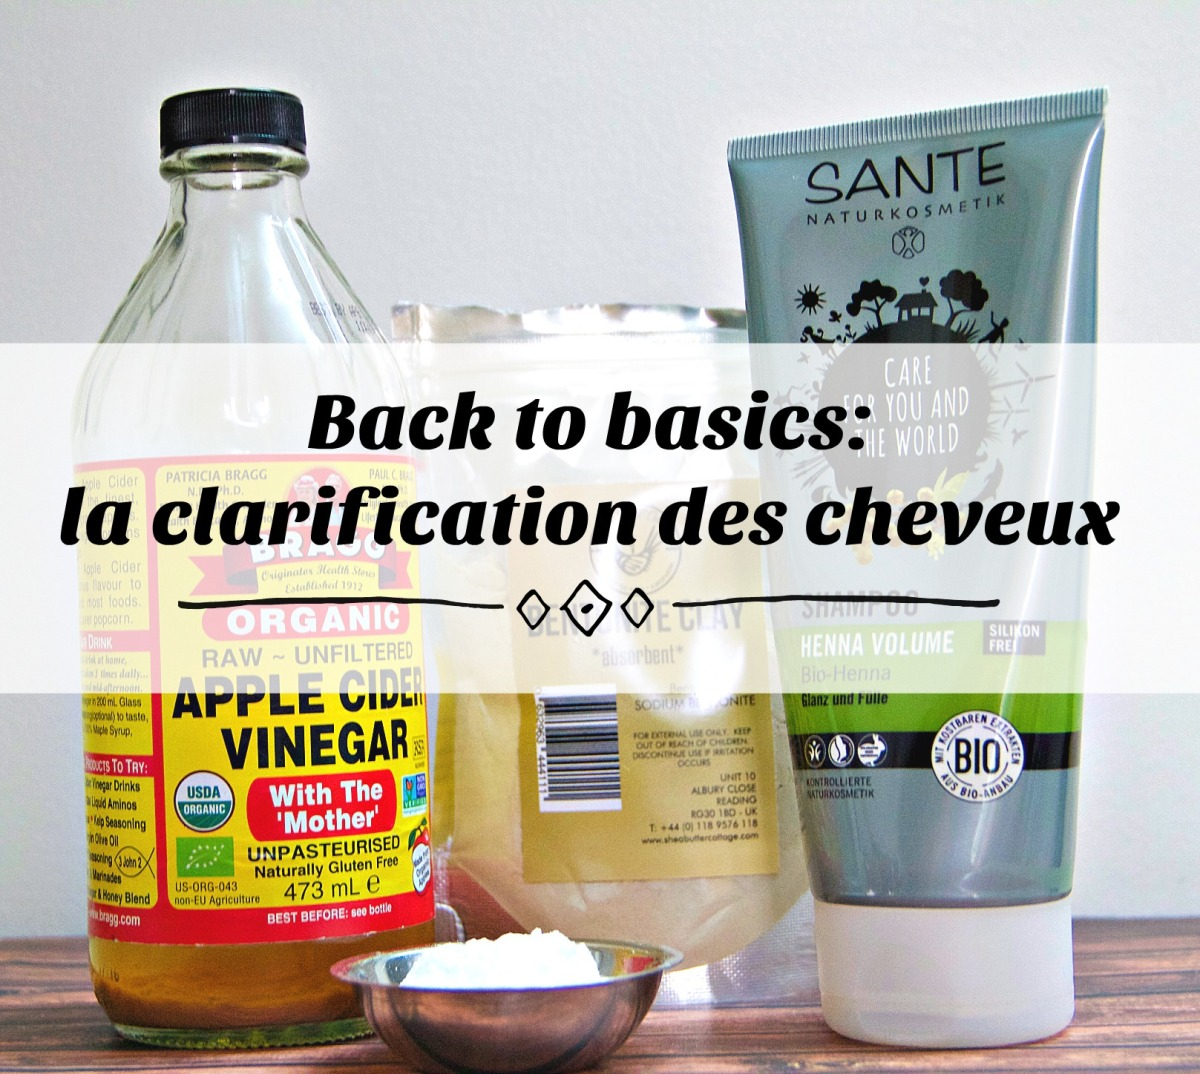 Back to basics: la clarification des cheveux